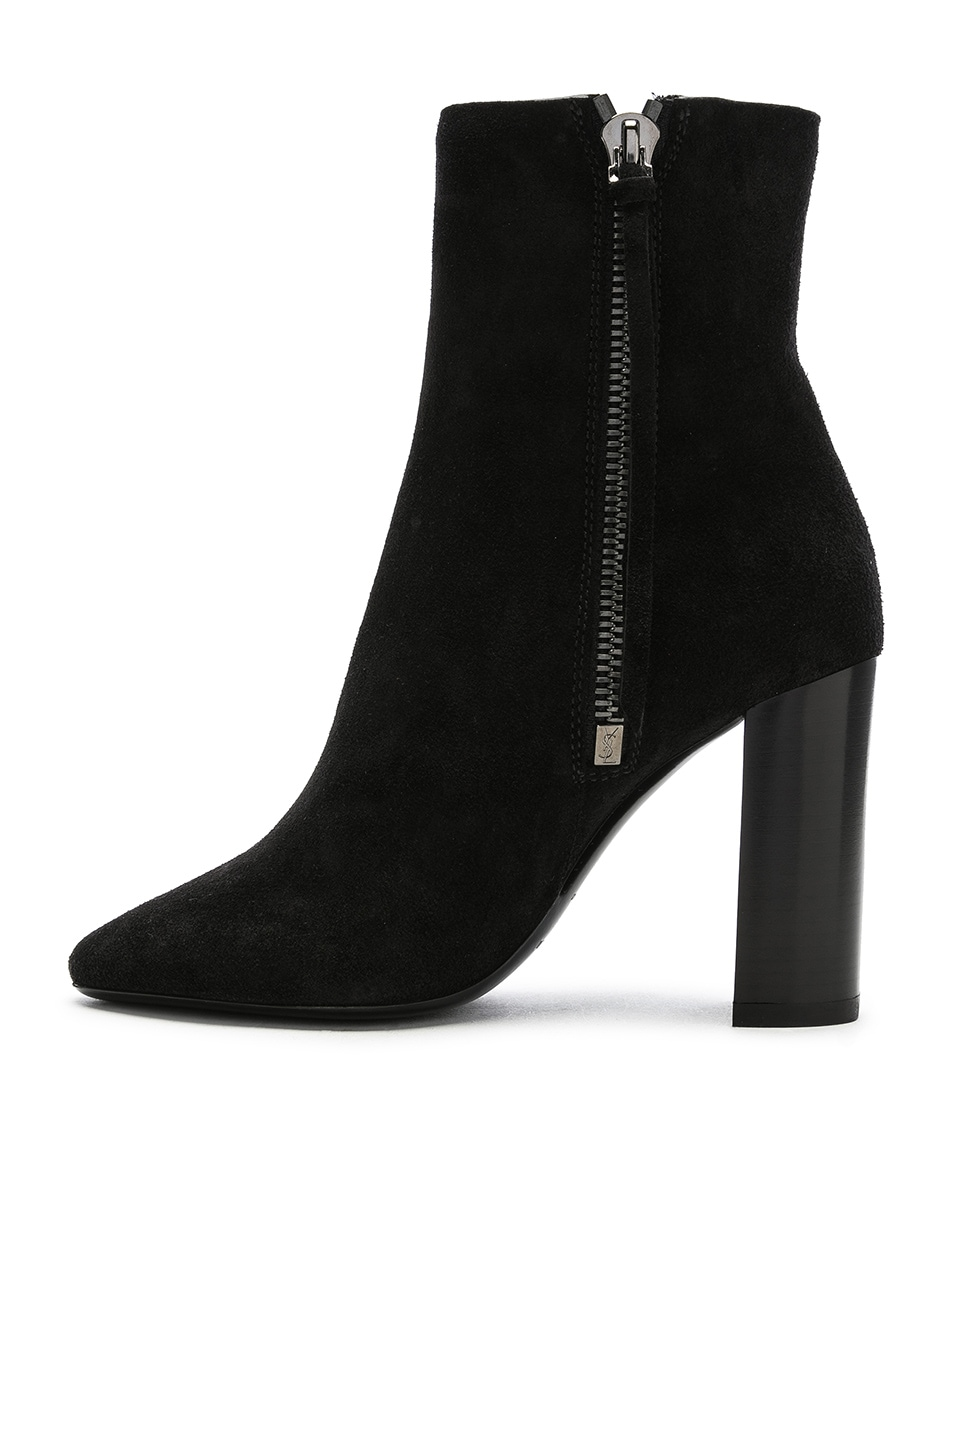 Image 5 of Saint Laurent Suede Lou Ankle Boots in Black